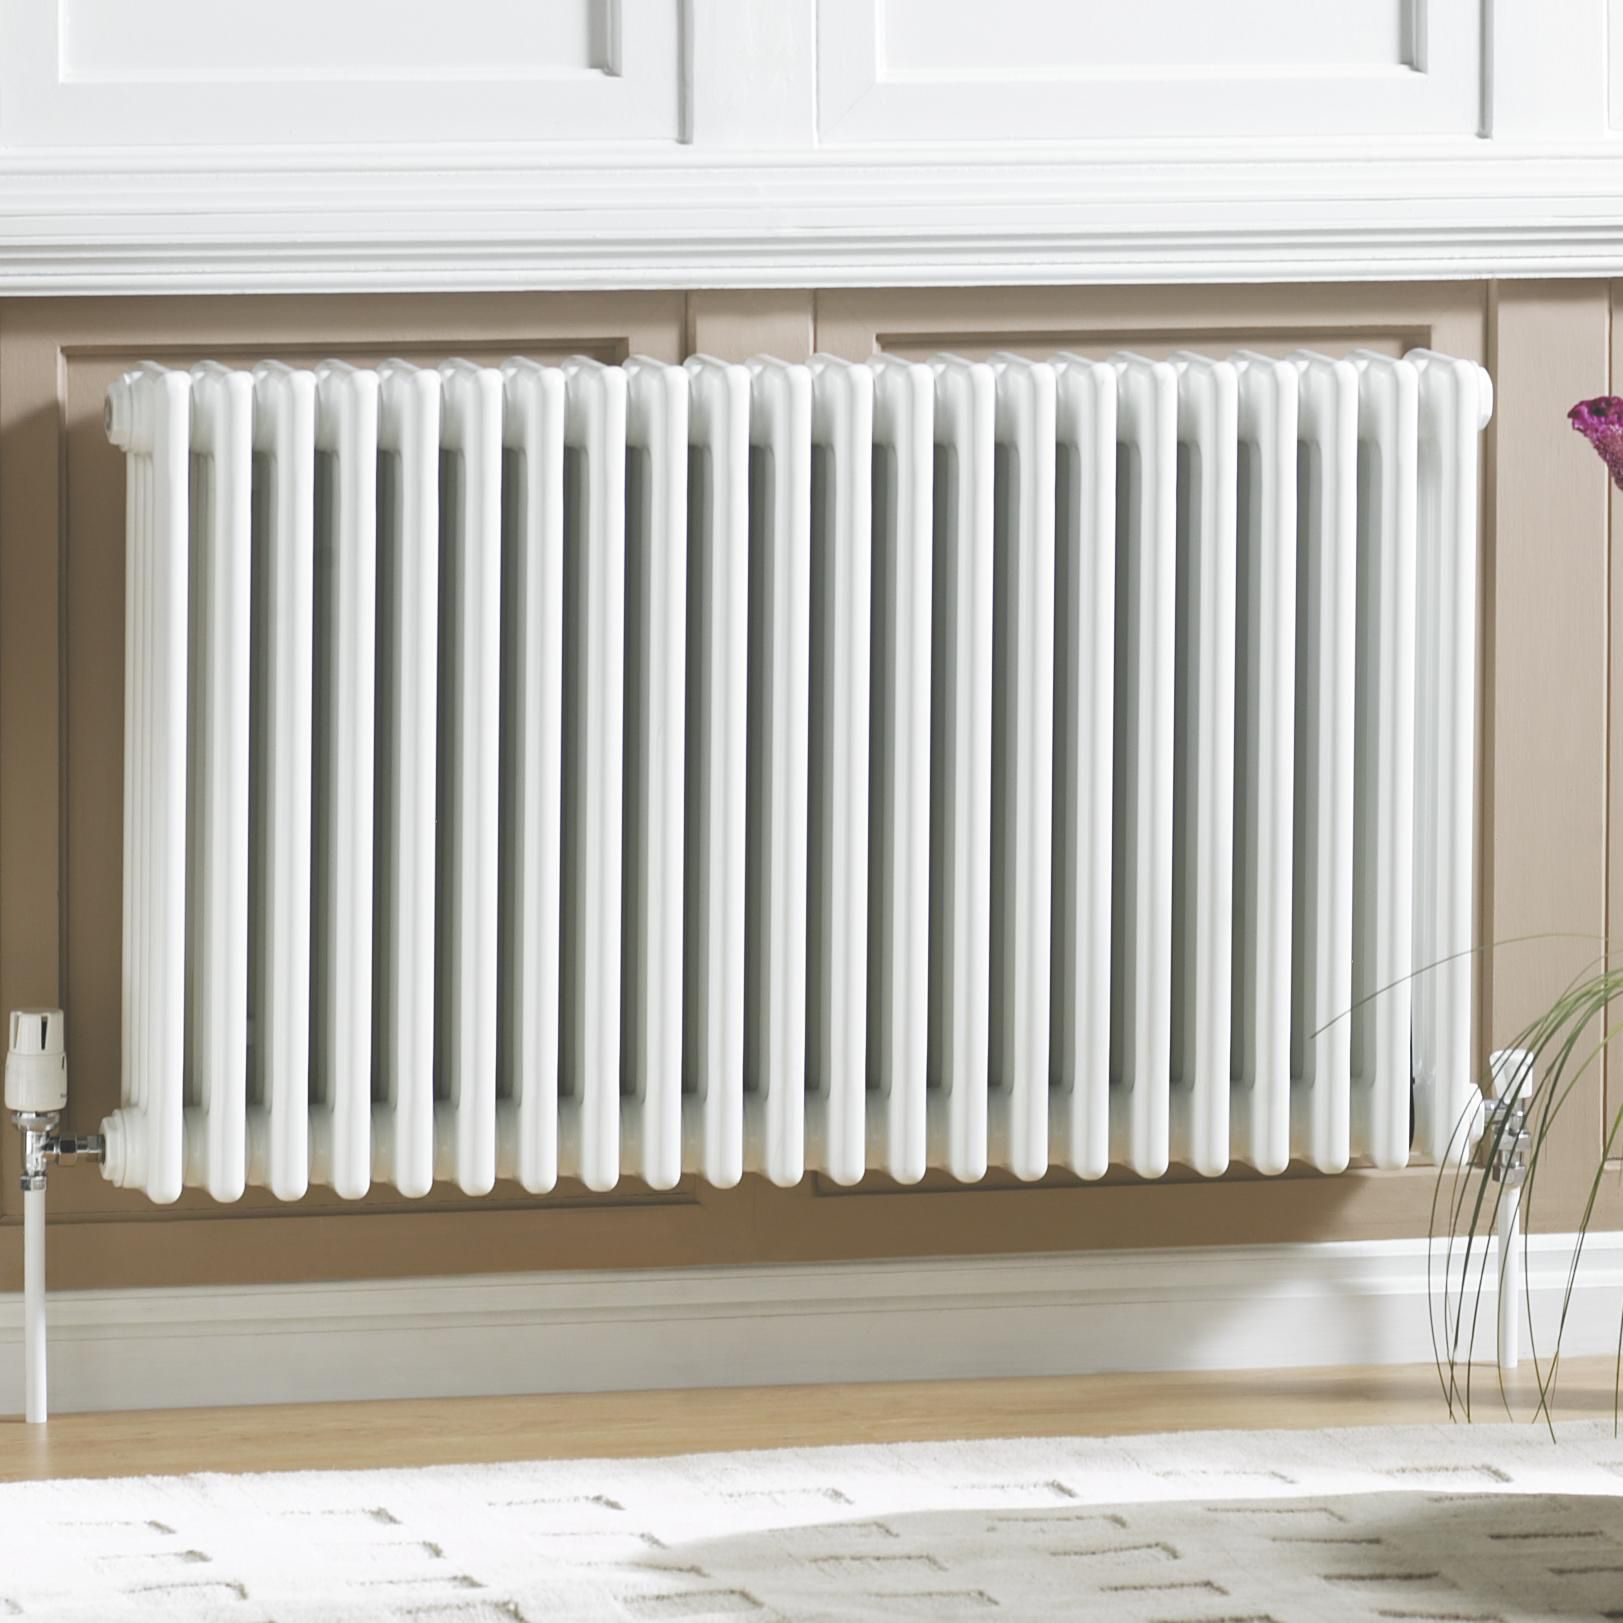 Acova 2 Column Radiator, White (W)628Mm (H)600Mm - Departments -